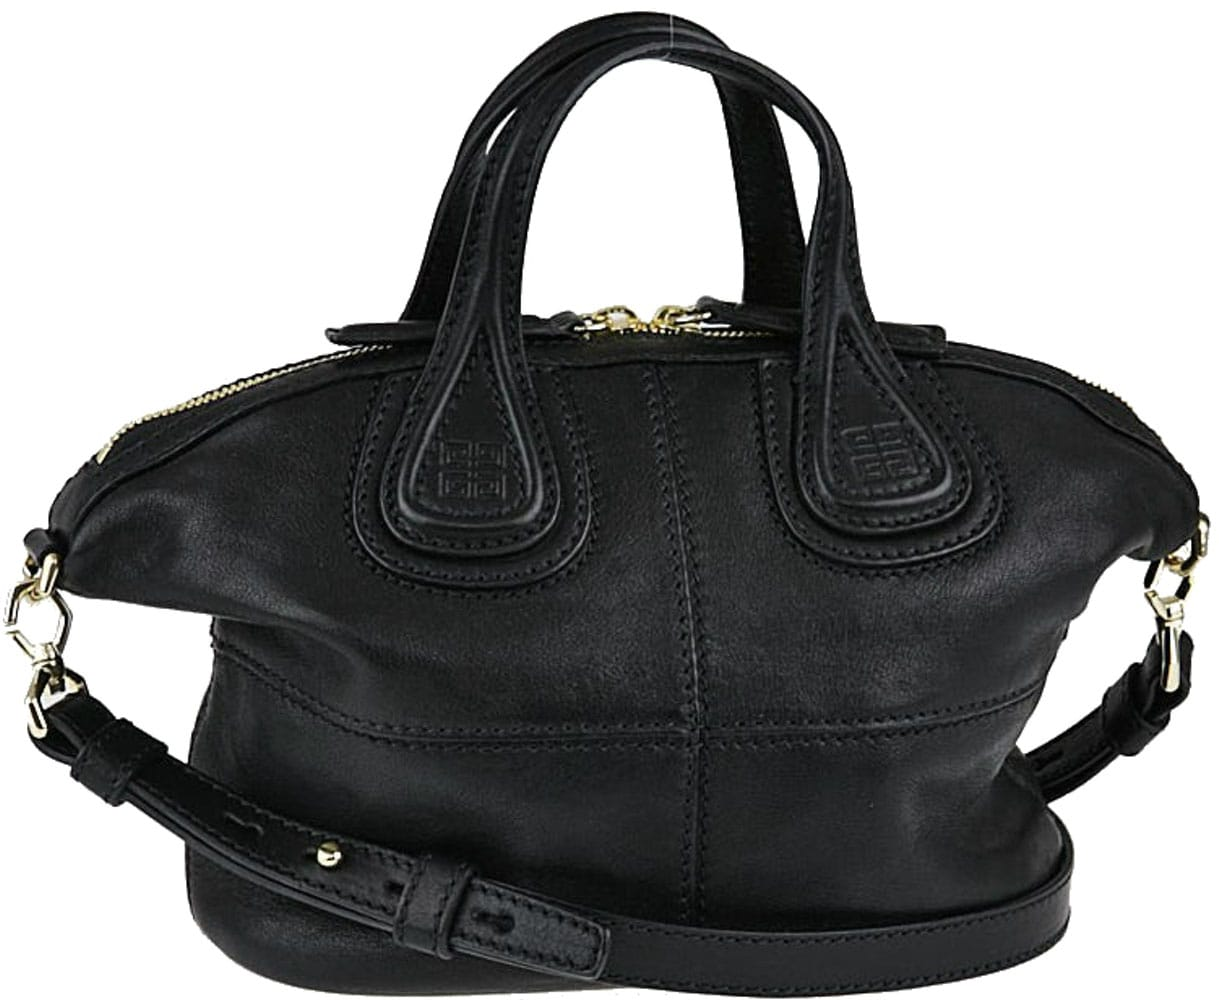 Givenchy Nightingale is a hobo-style bag with double top handles, double top zips, and a detachable shoulder strap